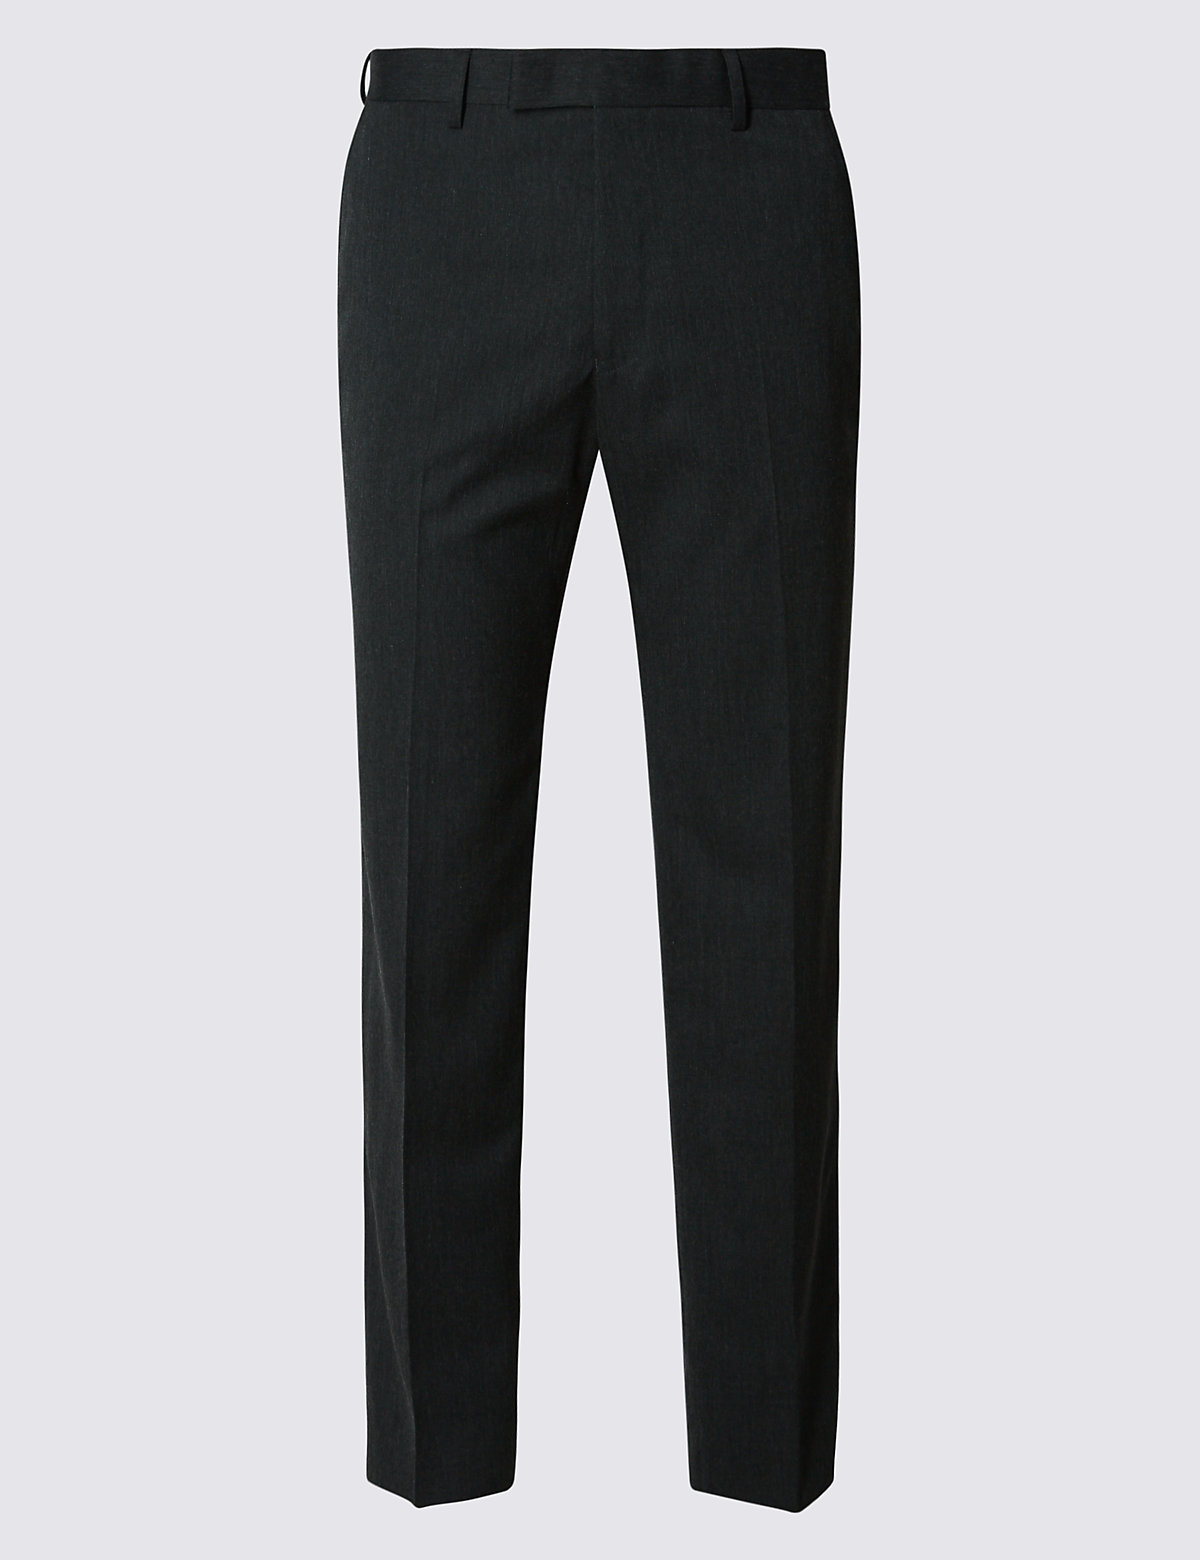 Marks & Spencer Charcoal Tailored Fit Trousers